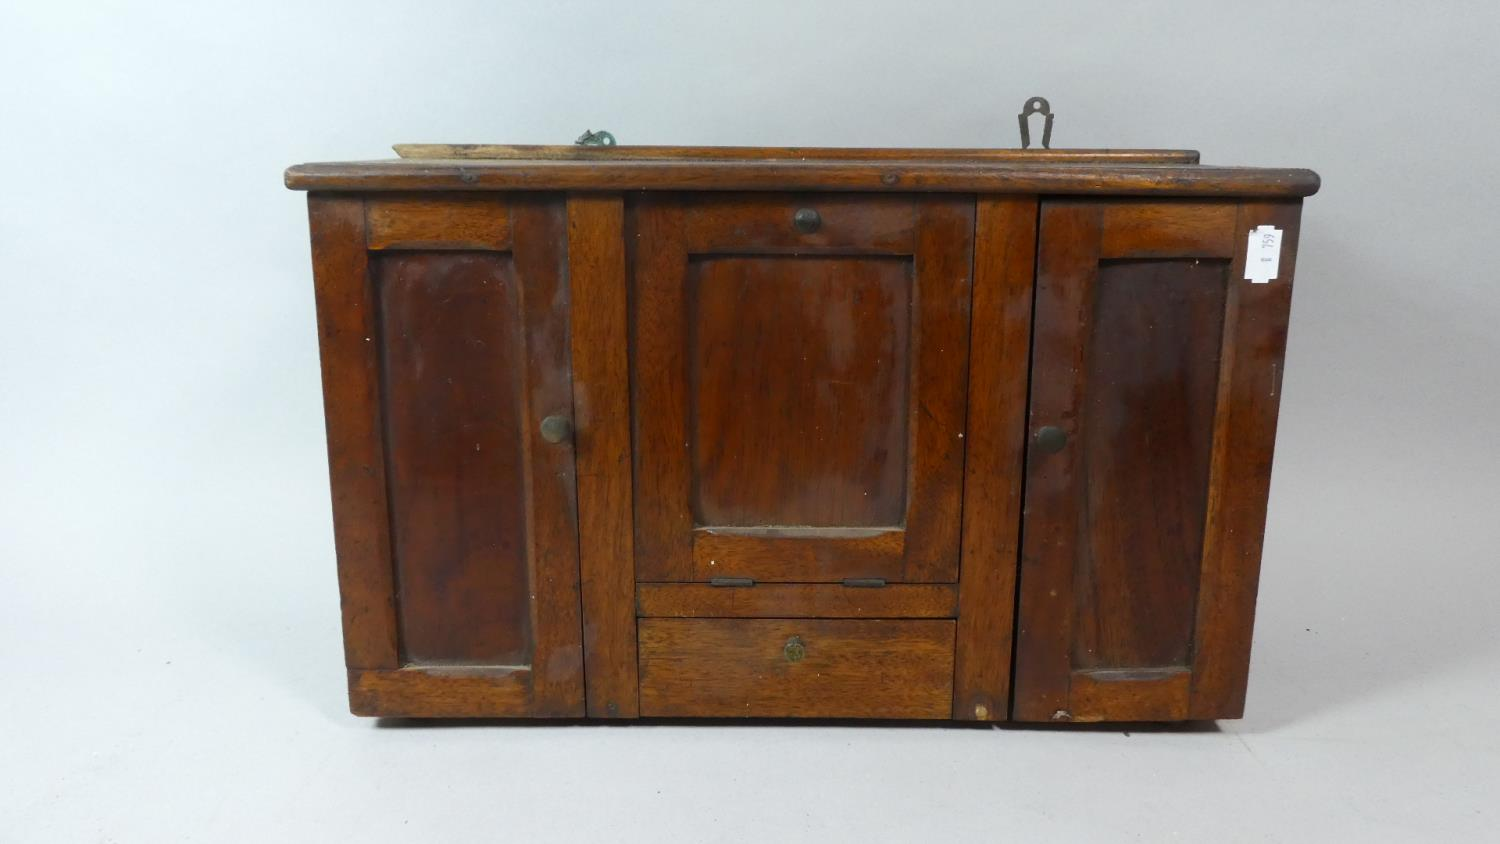 Lot 35 - A Late 19th Century Wooden Spice Cabinet with Centre Pull Out Tea Caddy Store Over Small Drawer